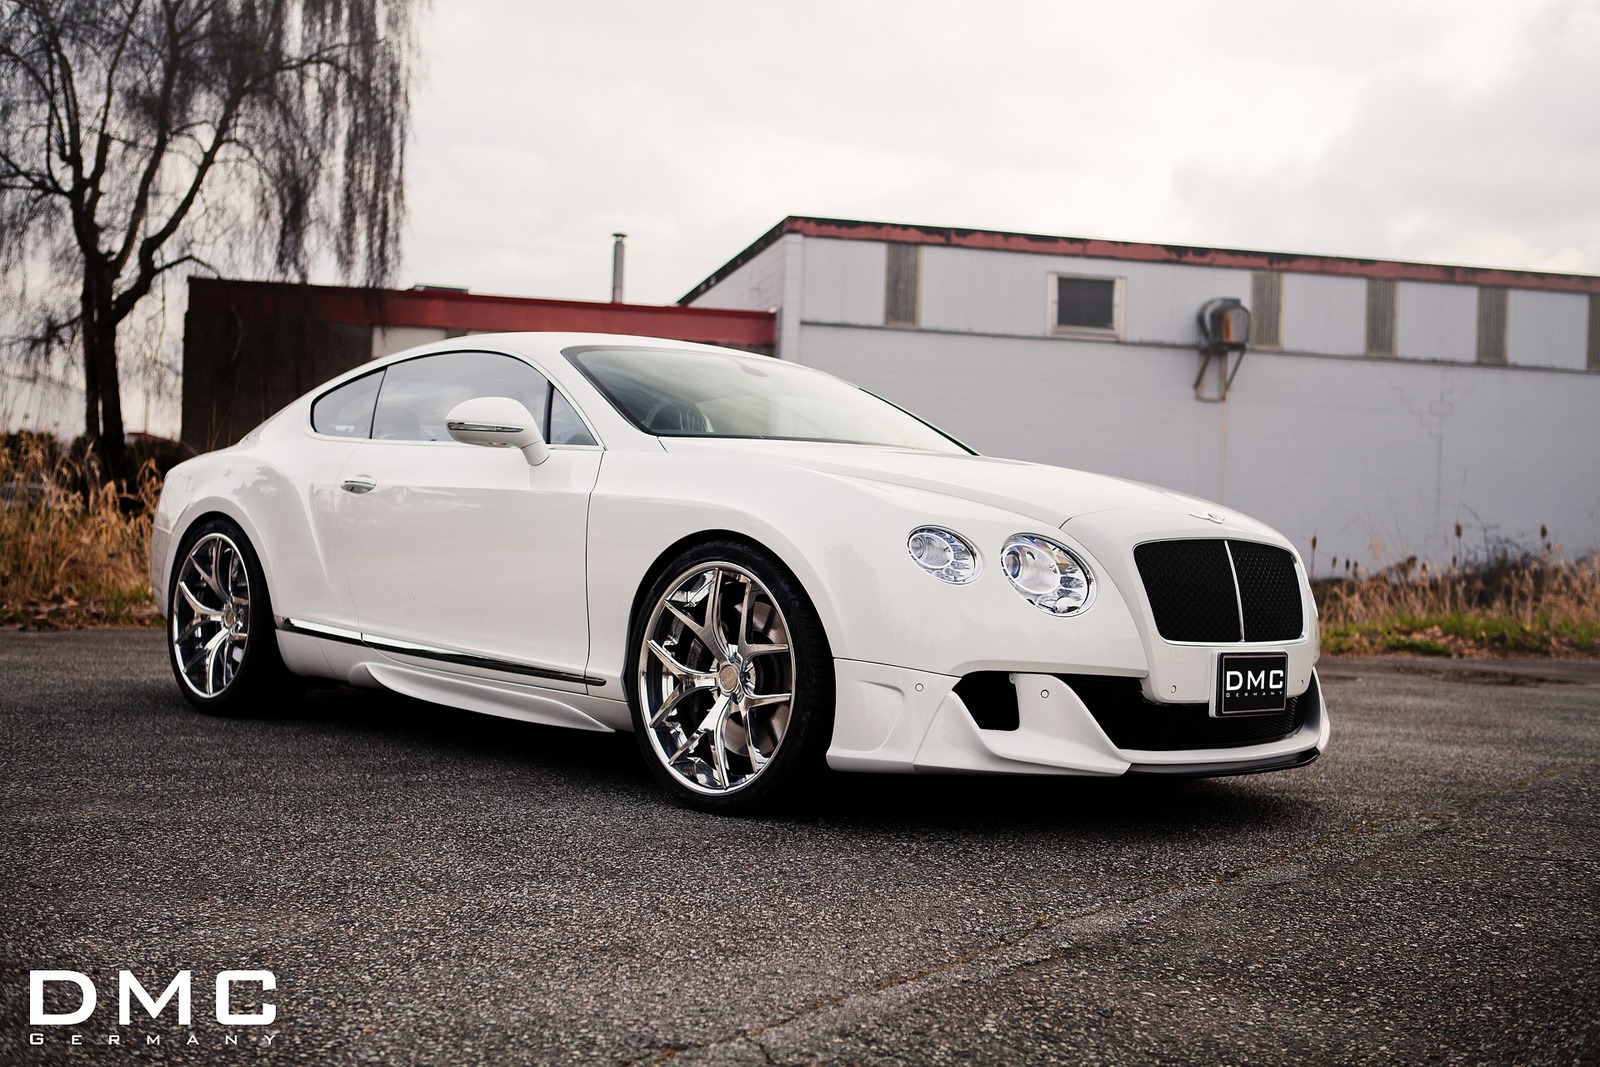 2013 Bentley Continental GT Gets Awesome DMC Body Kit ...